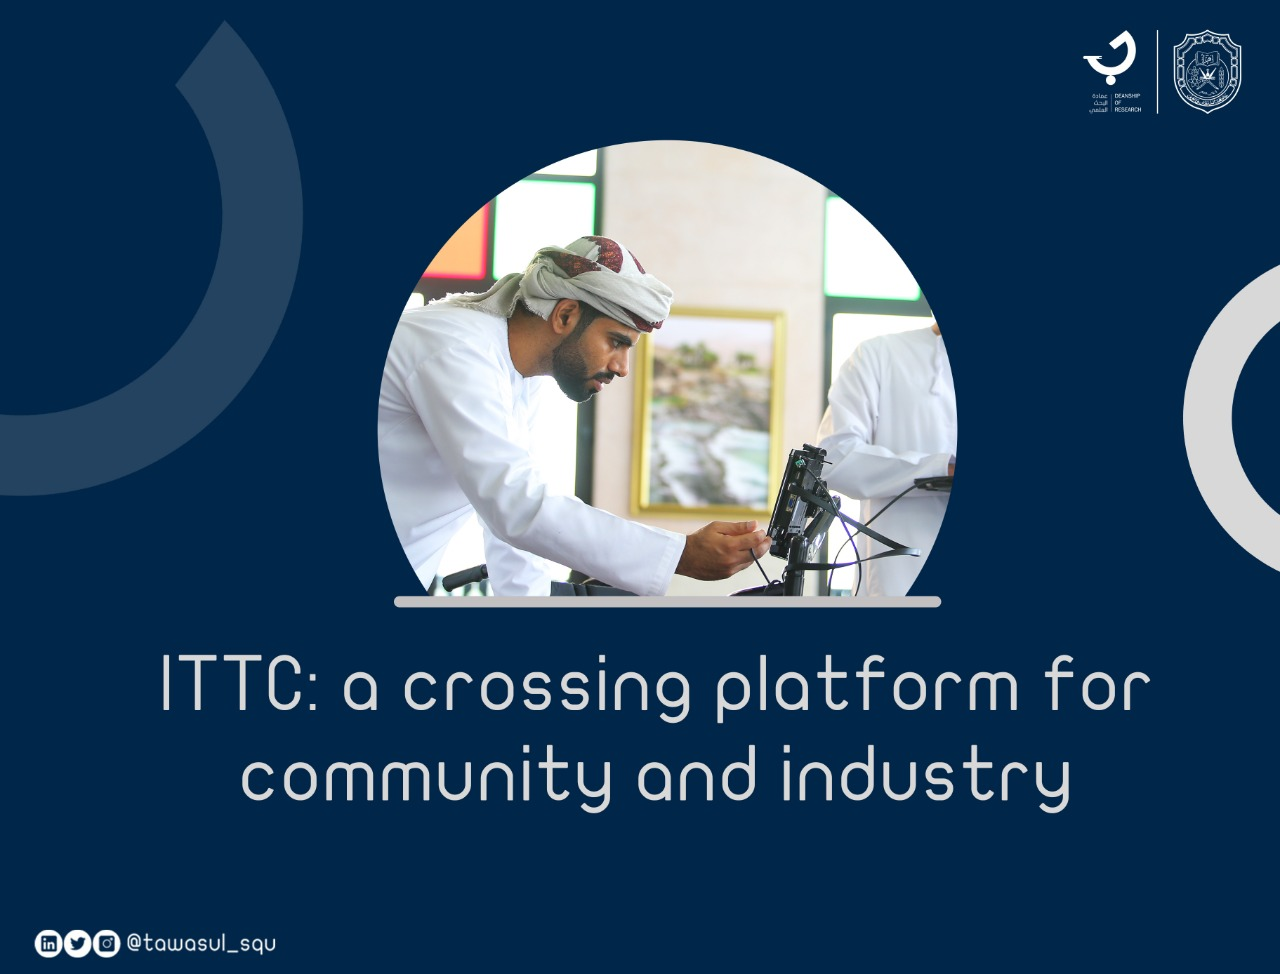 ITTC: A crossing platform for community and industry